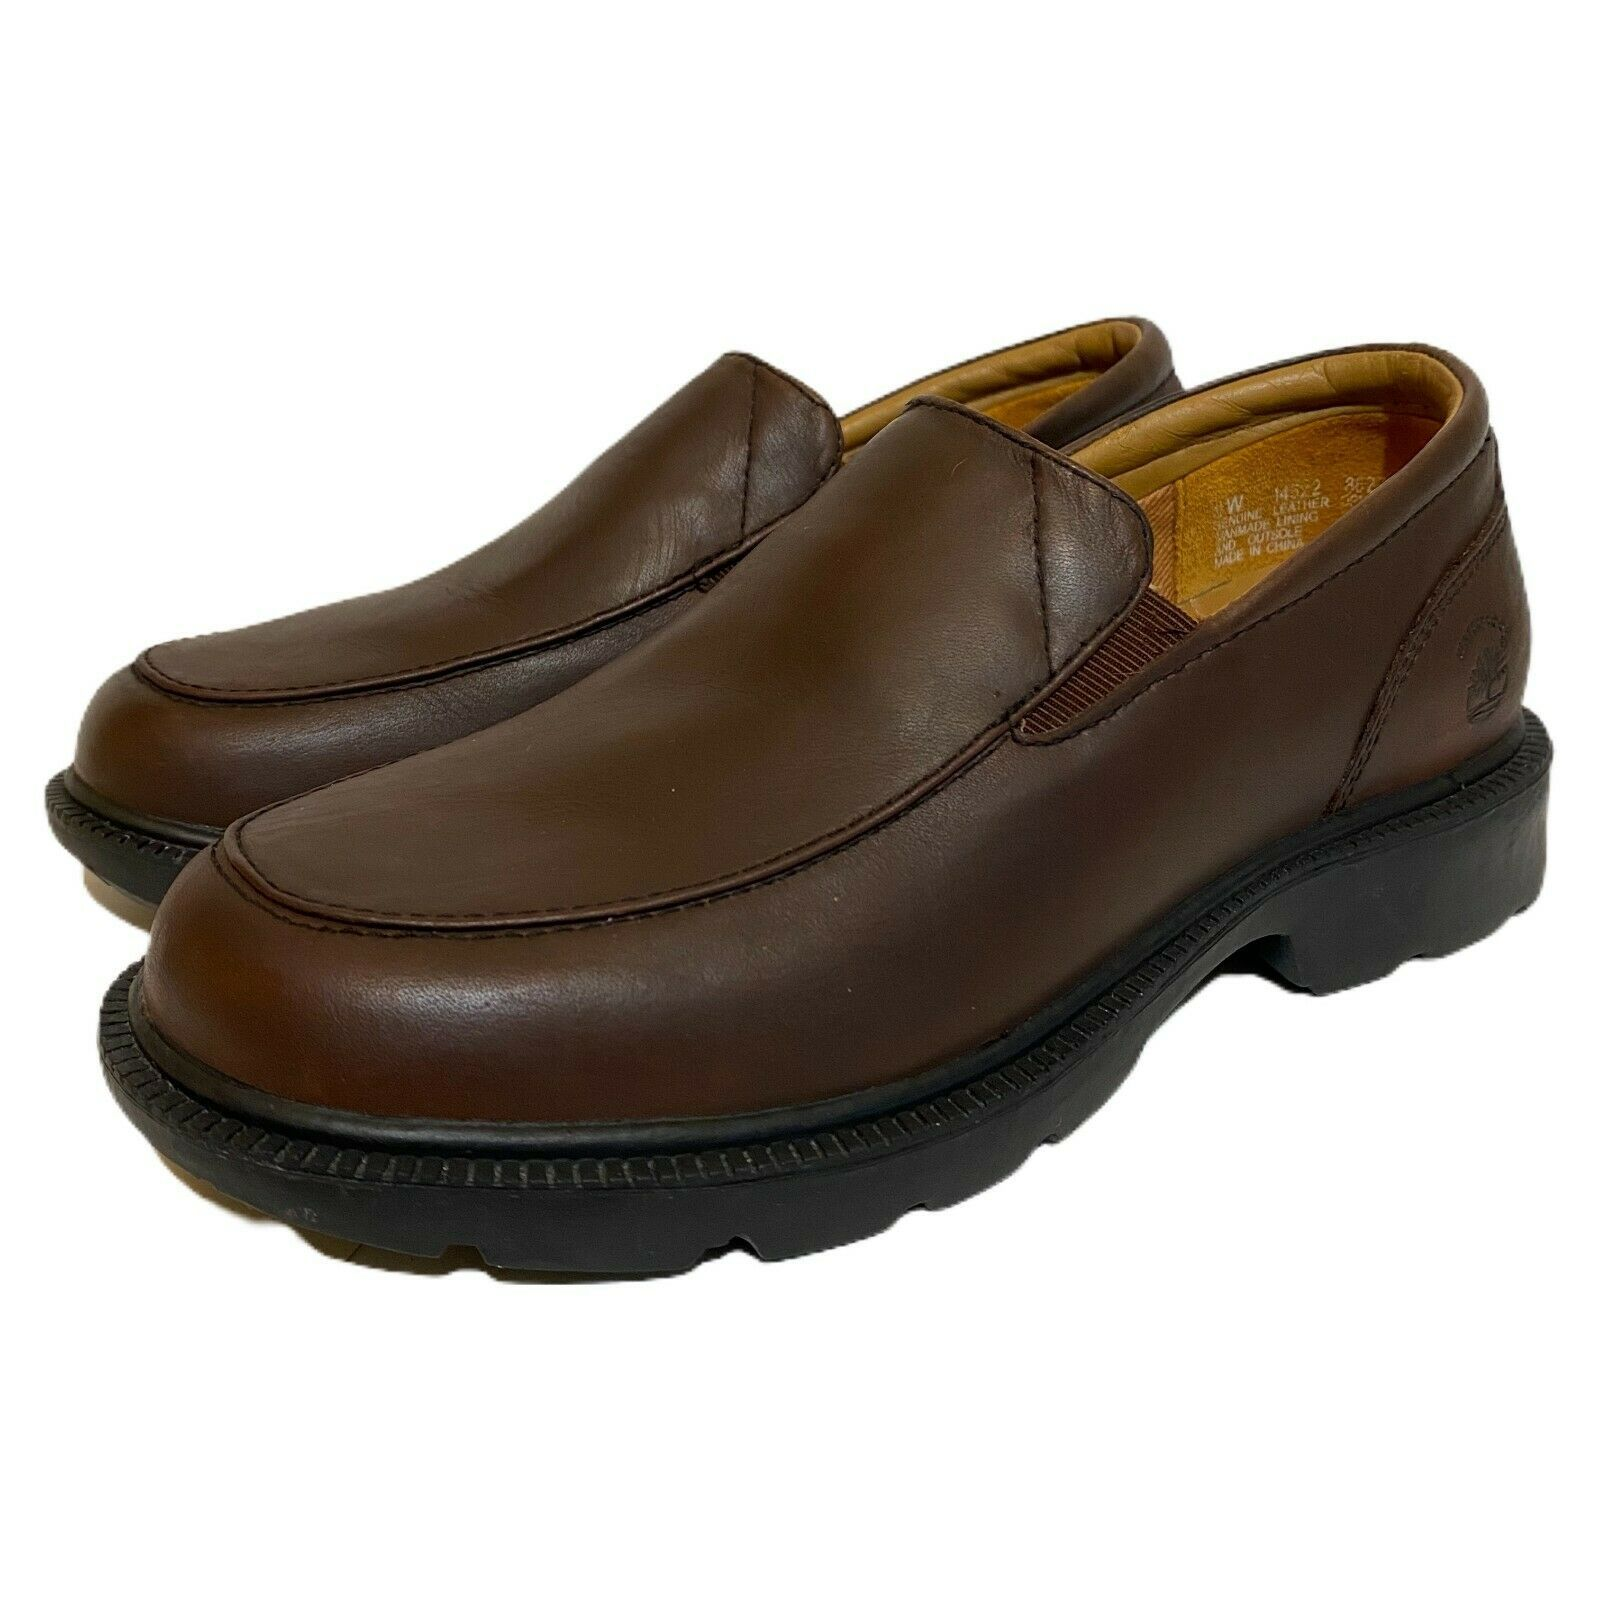 Timberland Womens Brown Leather Waterproof Slip On Shoes Clogs 14322 Size 6 W - $34.64